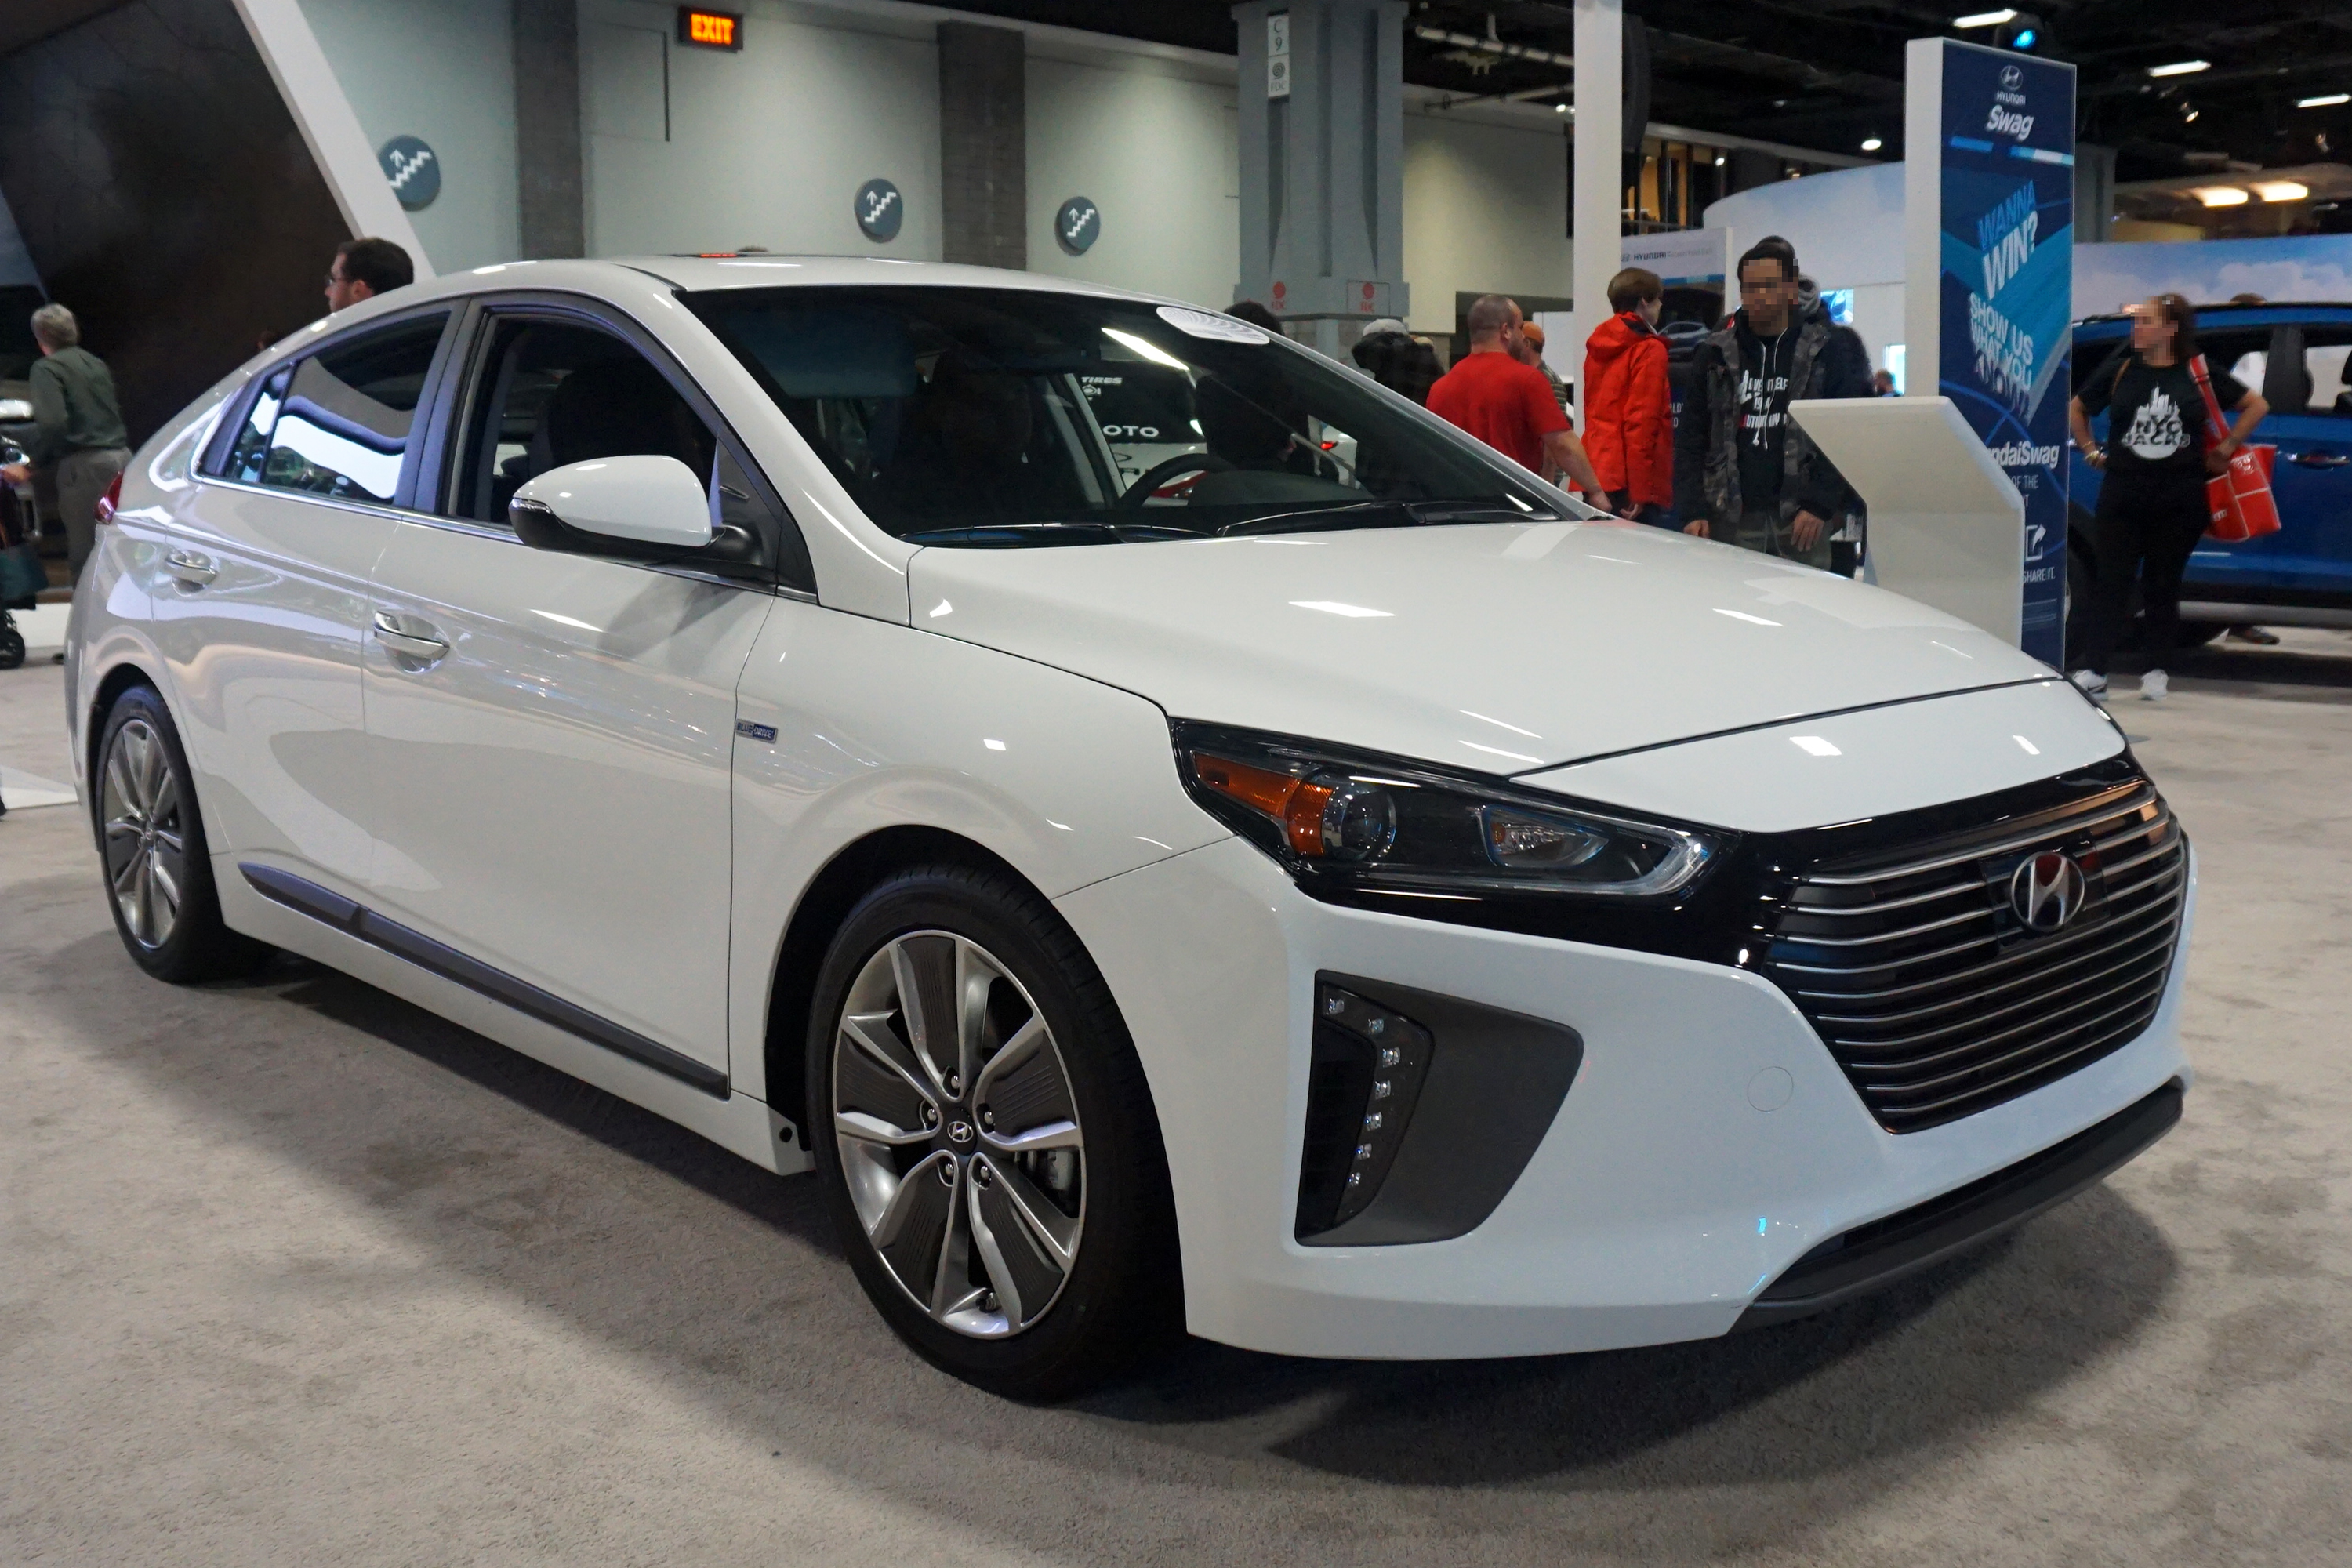 file hyundai ioniq hybrid was 2017 wikimedia commons. Black Bedroom Furniture Sets. Home Design Ideas